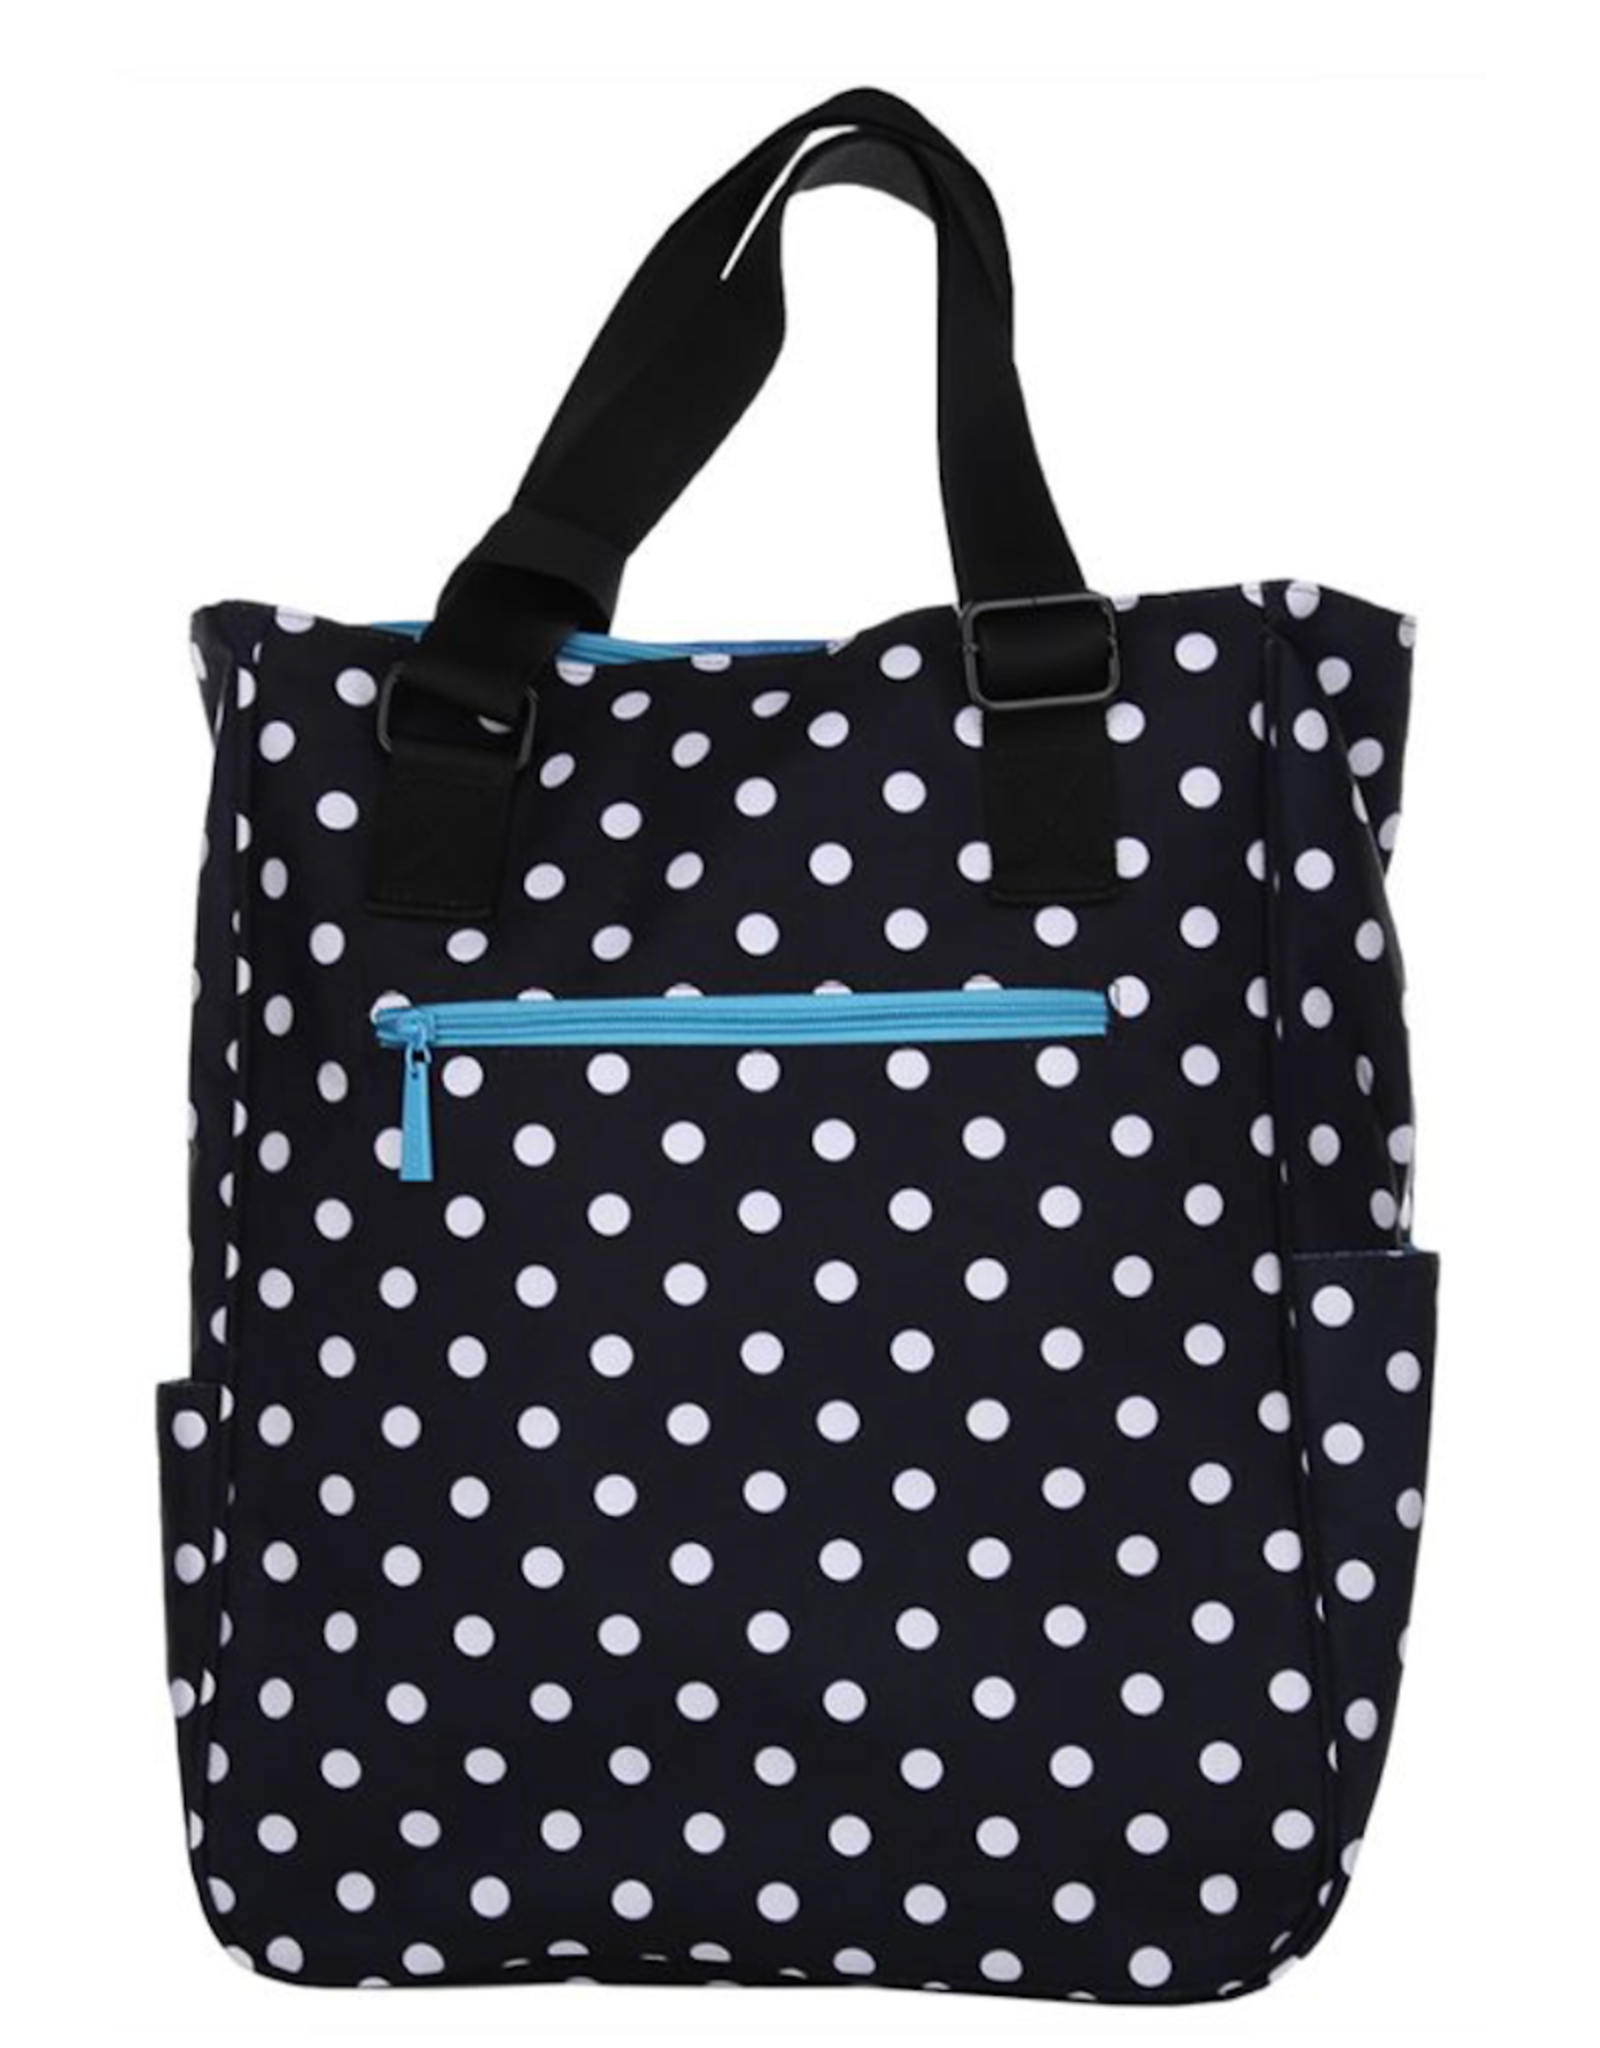 MAGGIE MATHER TENNIS ZIPPER TOTE: POLKA DOT